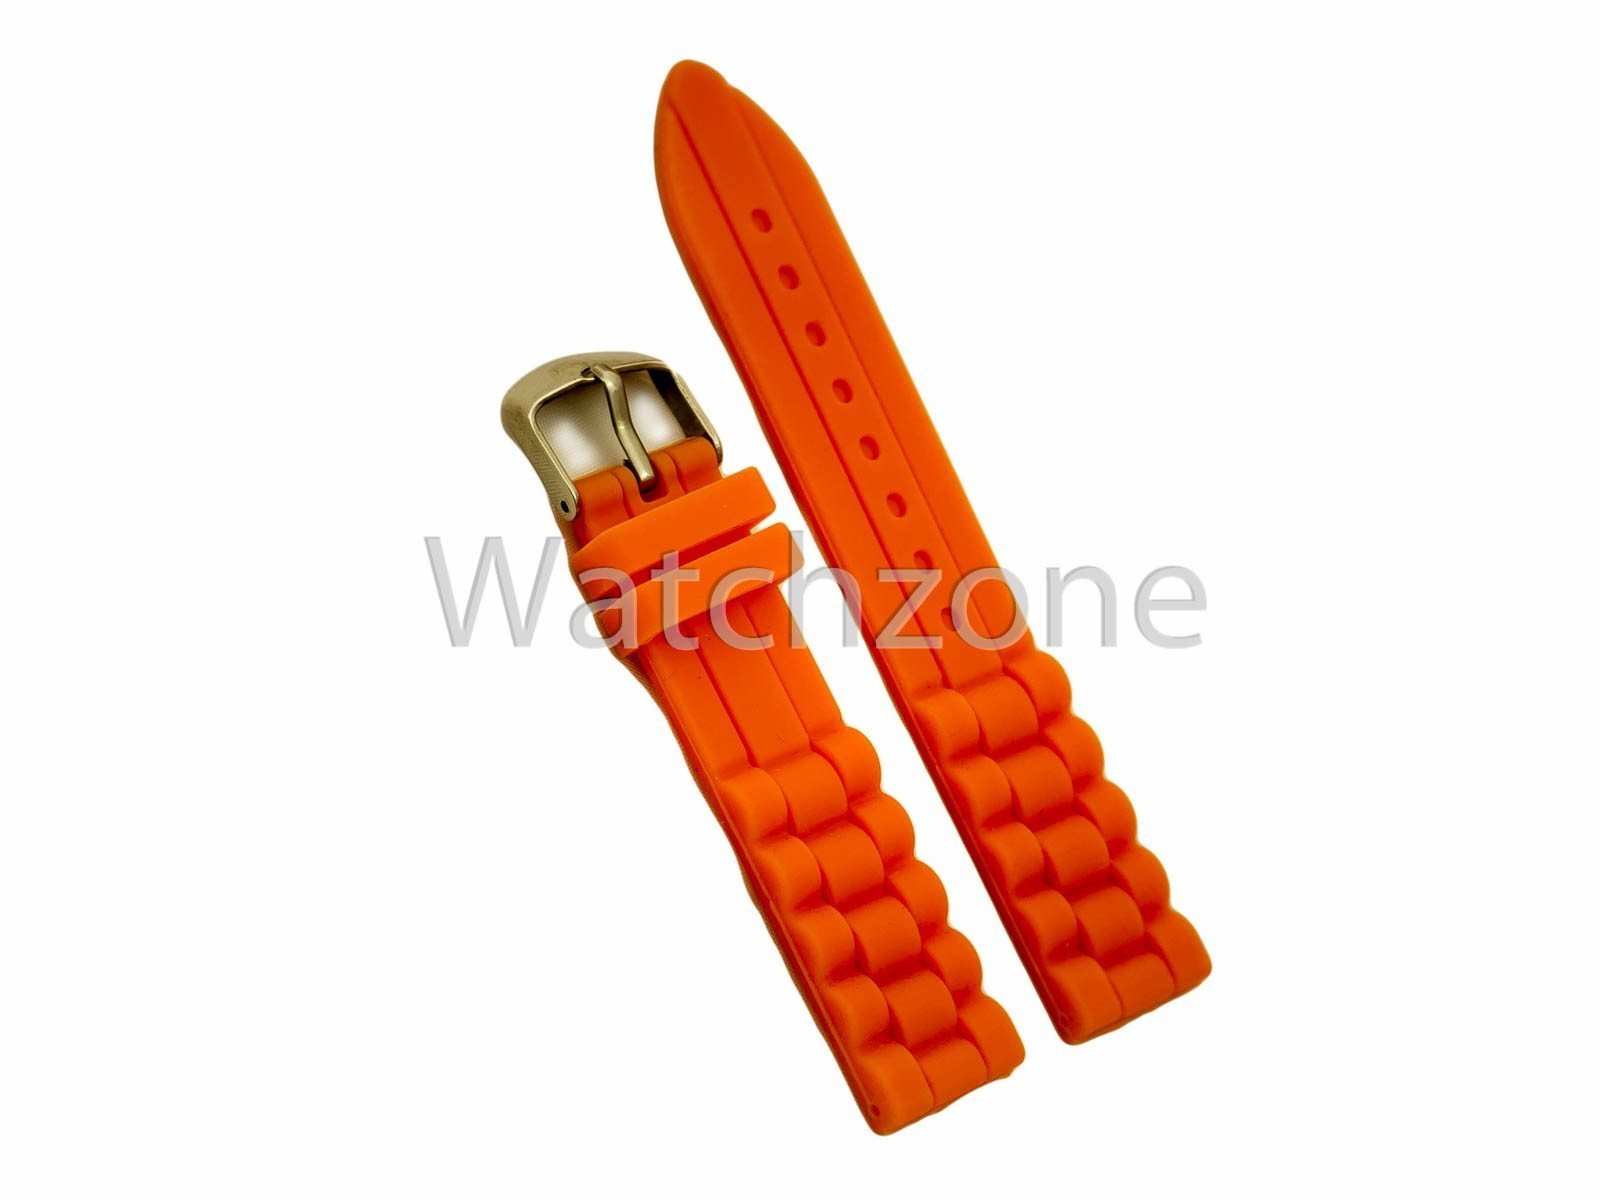 Curea Silicon Orange 18mm imagine techstar.ro 2021